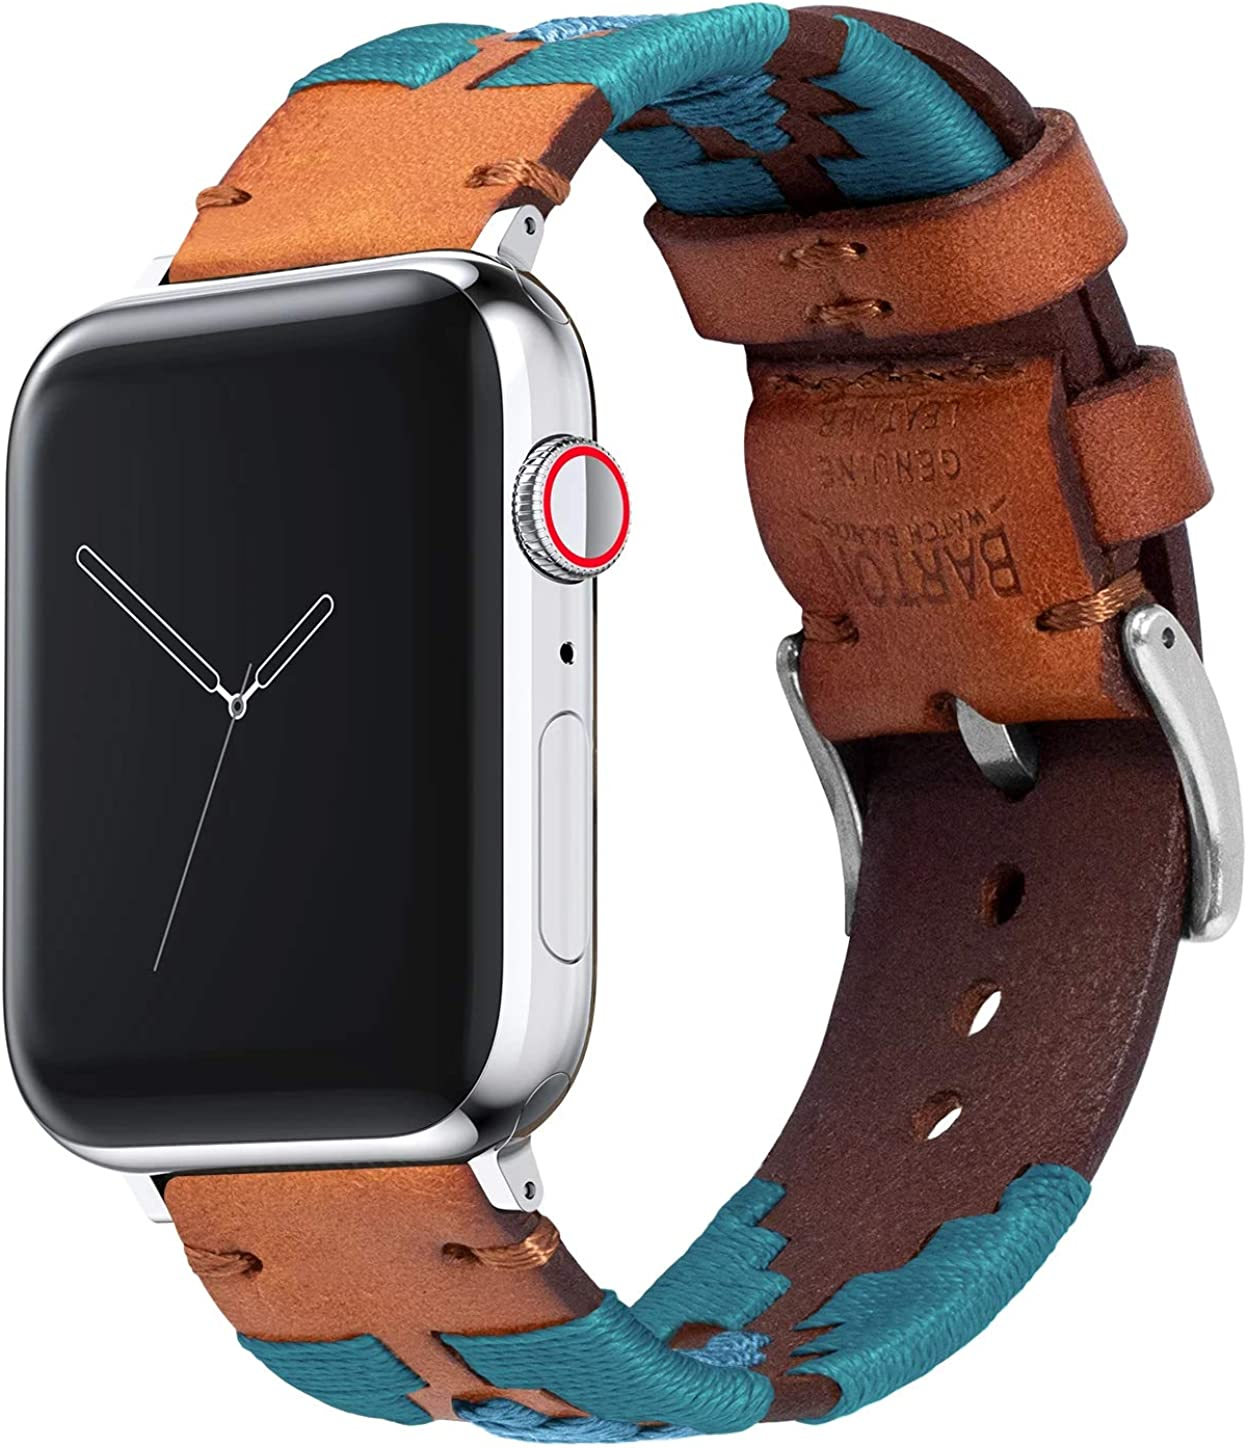 Barton Gaucho Leather Quick Release Watch Band Straps - Compatible with Apple Watch